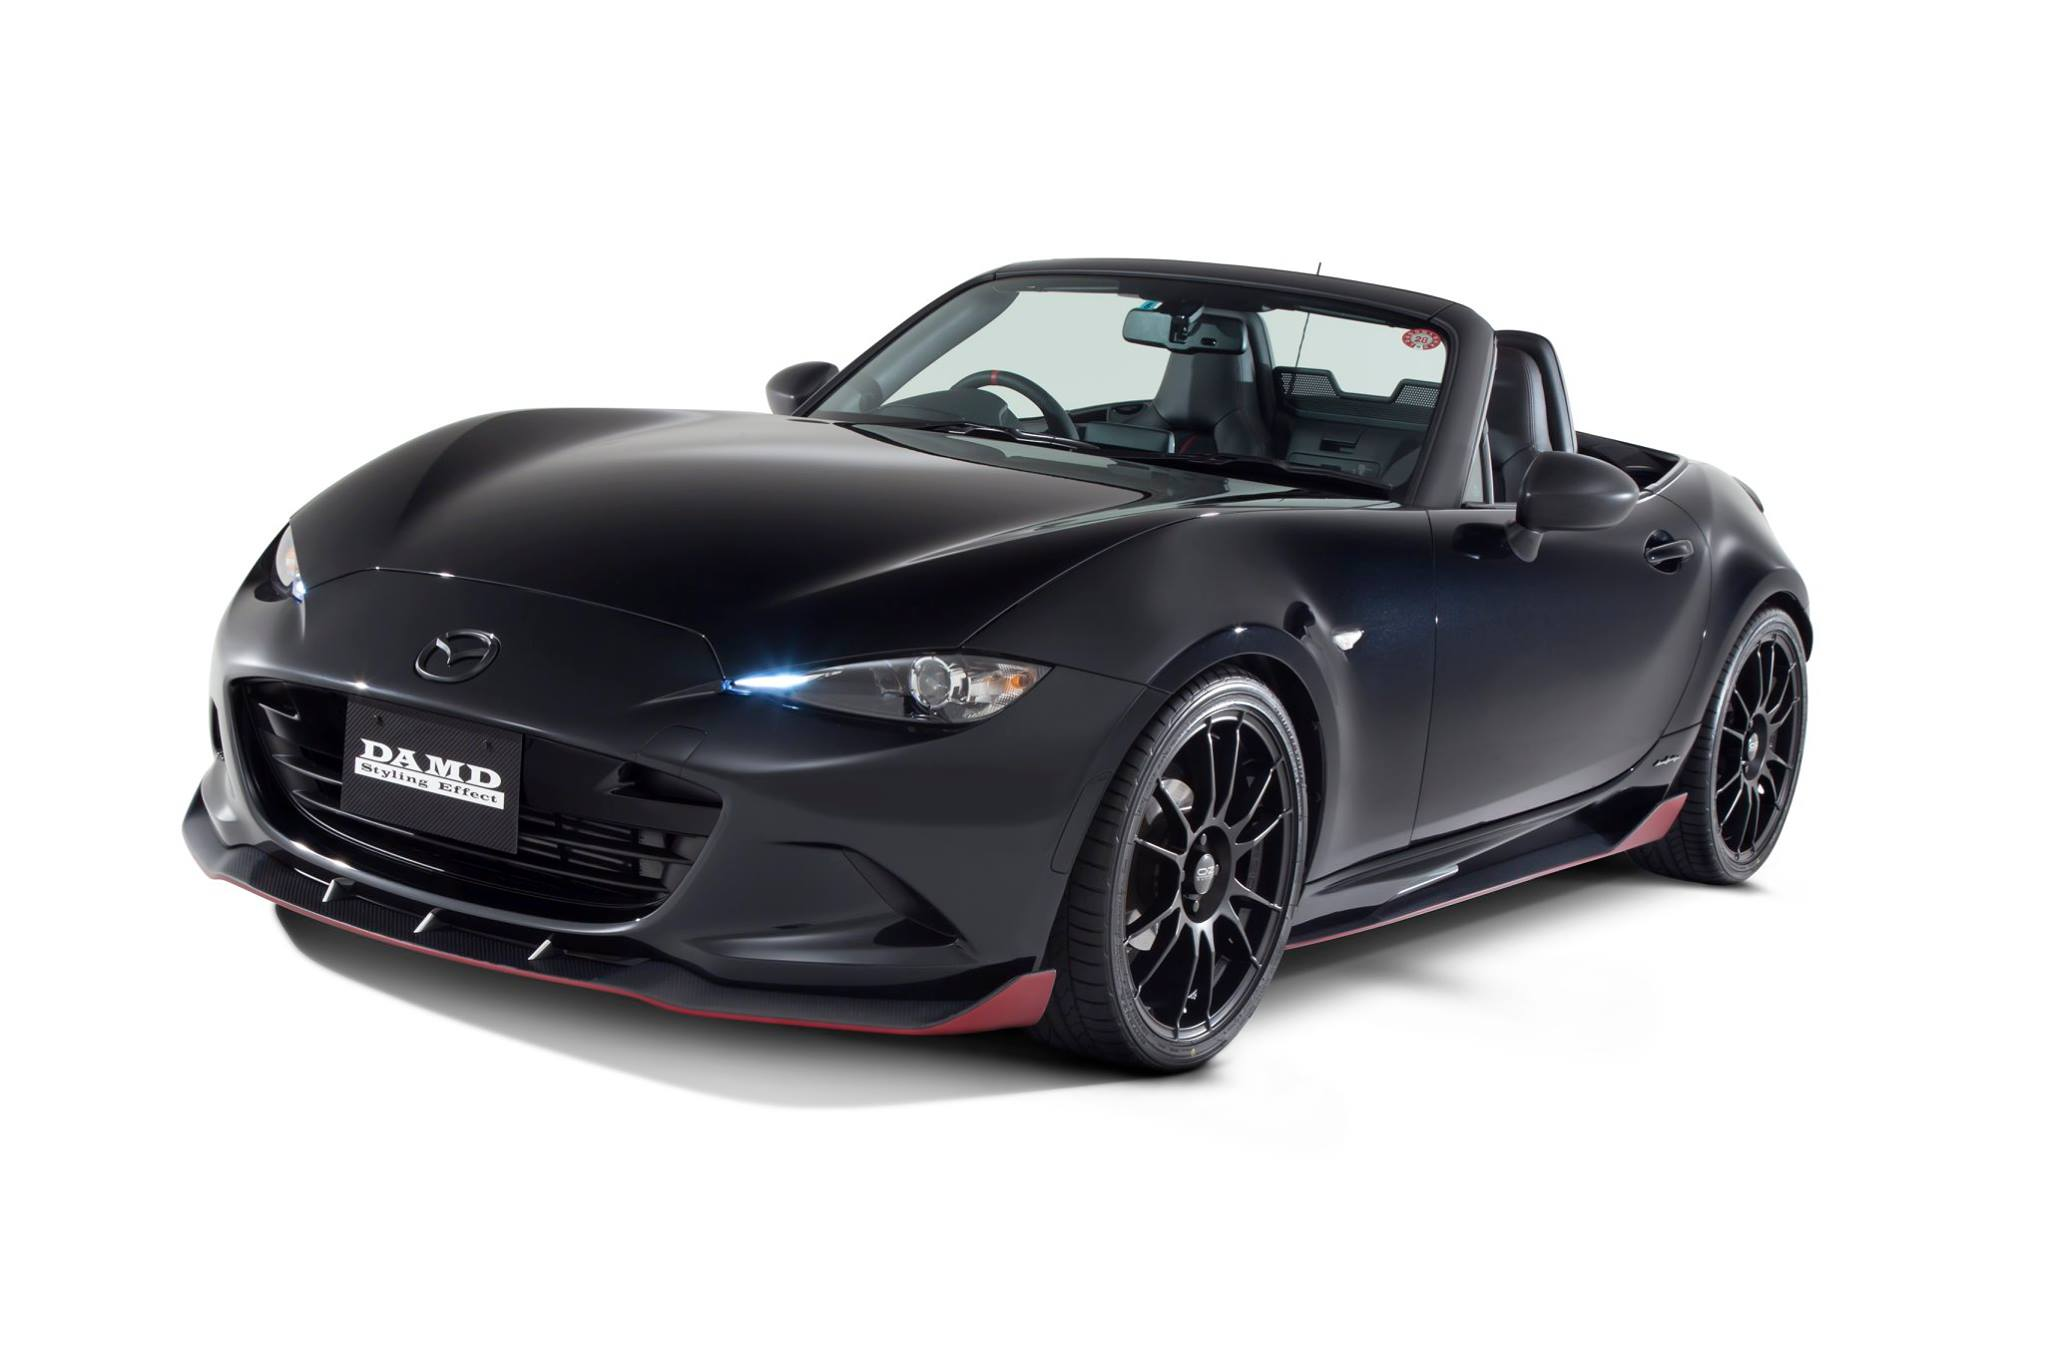 2016 mazda mx 5 roadster dark knight tuned by damd with. Black Bedroom Furniture Sets. Home Design Ideas